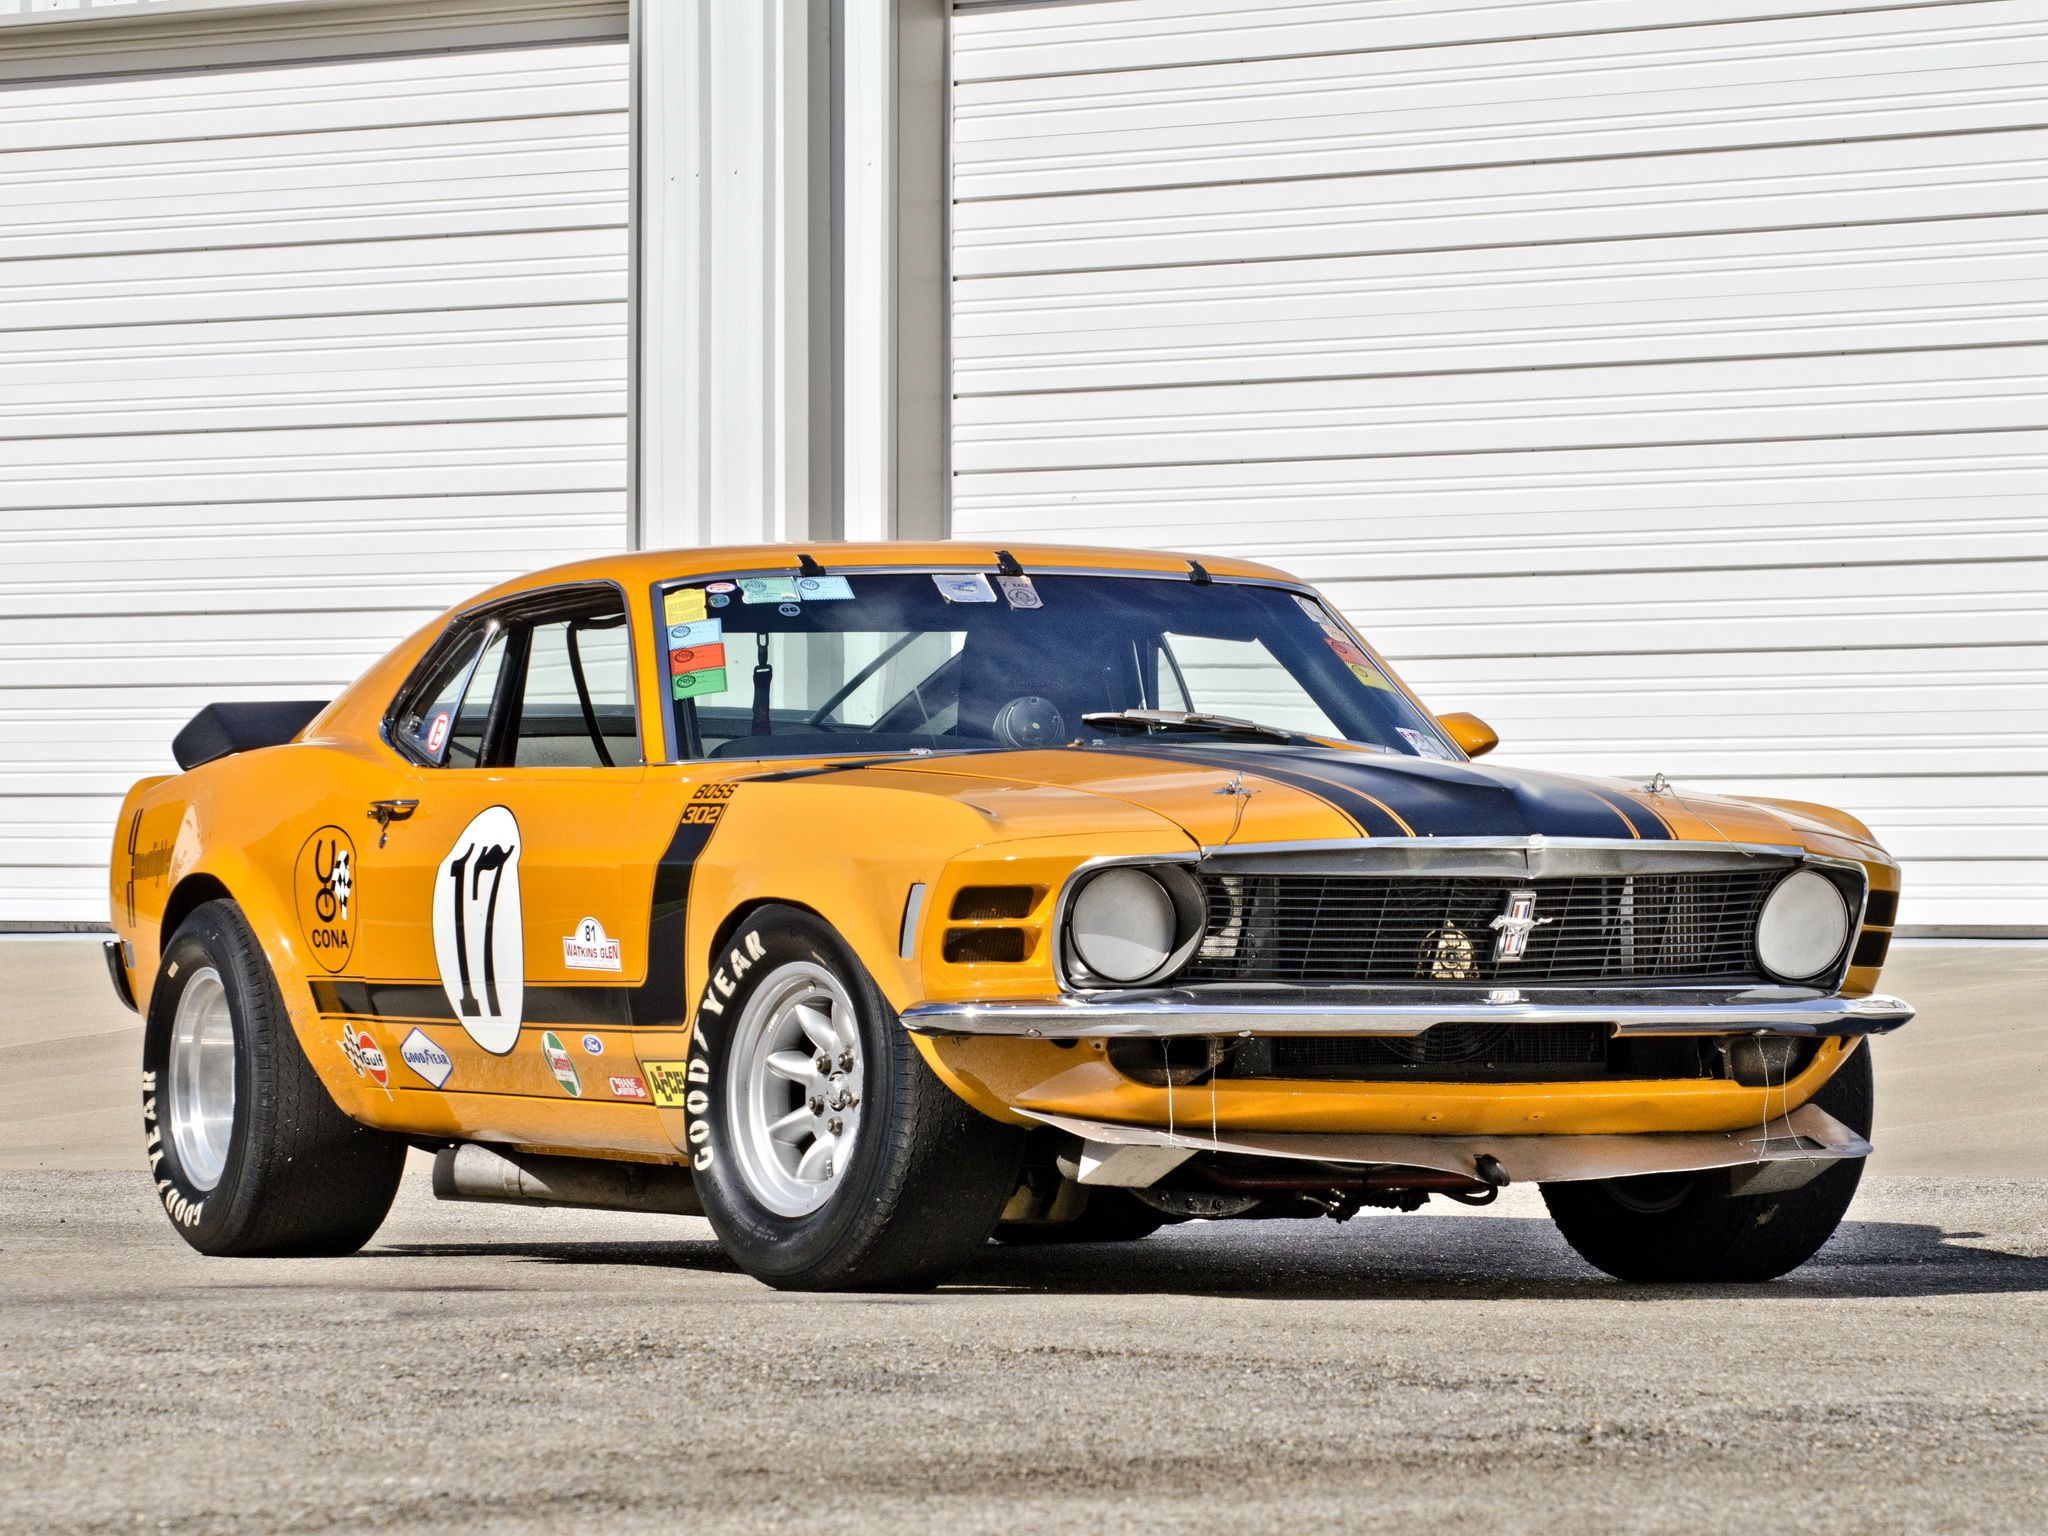 racing mustang boss | Mustang Boss 302 Trans-Am Race Car \'1970 ...